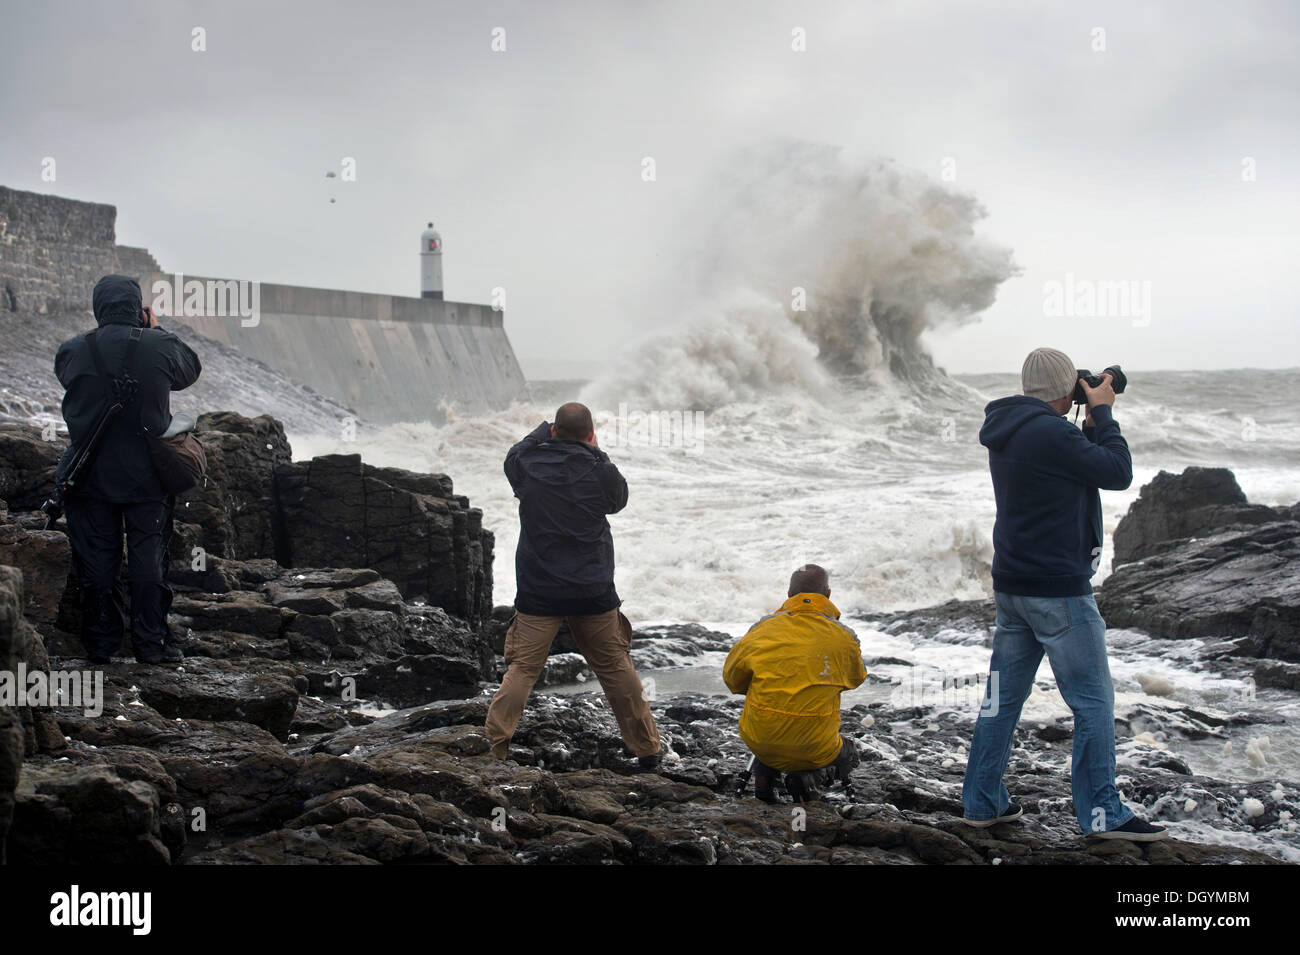 Porthcawl, South Wales, UK. 27th Oct, 2013. Photographers line up to capture the waves breaking over the sea wall at Porthcawl, South Wales (27 Oct 2013)The storm, called St Jude, brought the windiest weather to hit the UK since 1987. © Adrian Sherratt/Alamy Live News - Stock Image